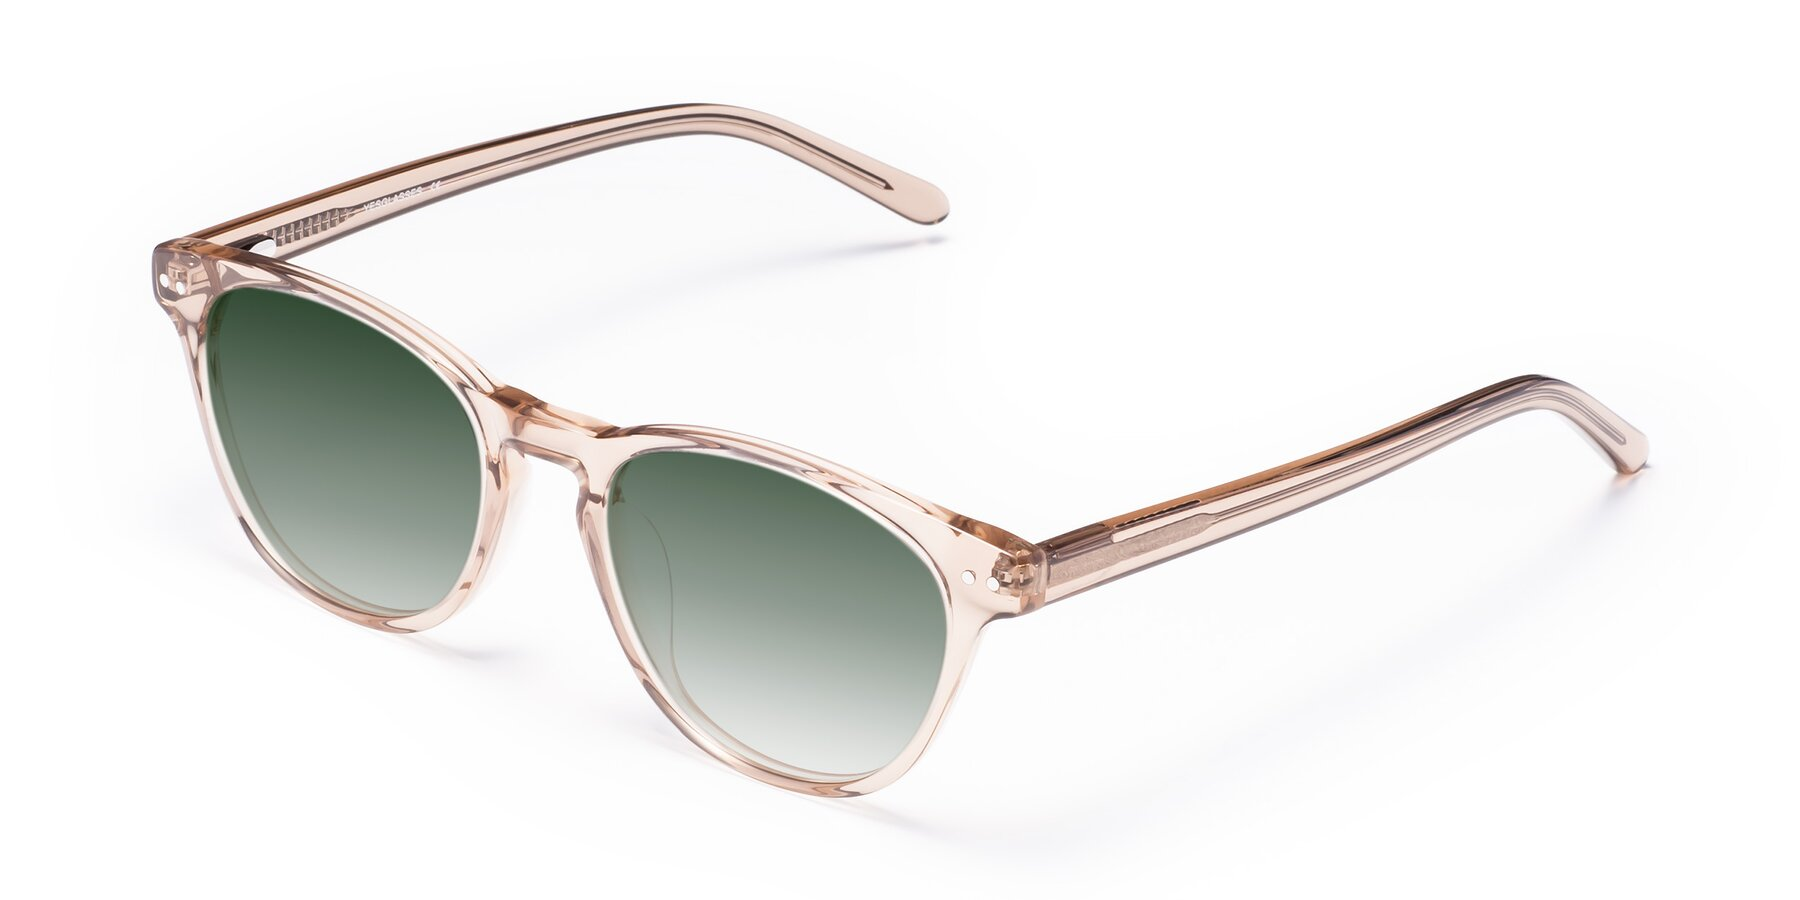 Angle of Blaze in light Brown with Green Gradient Lenses